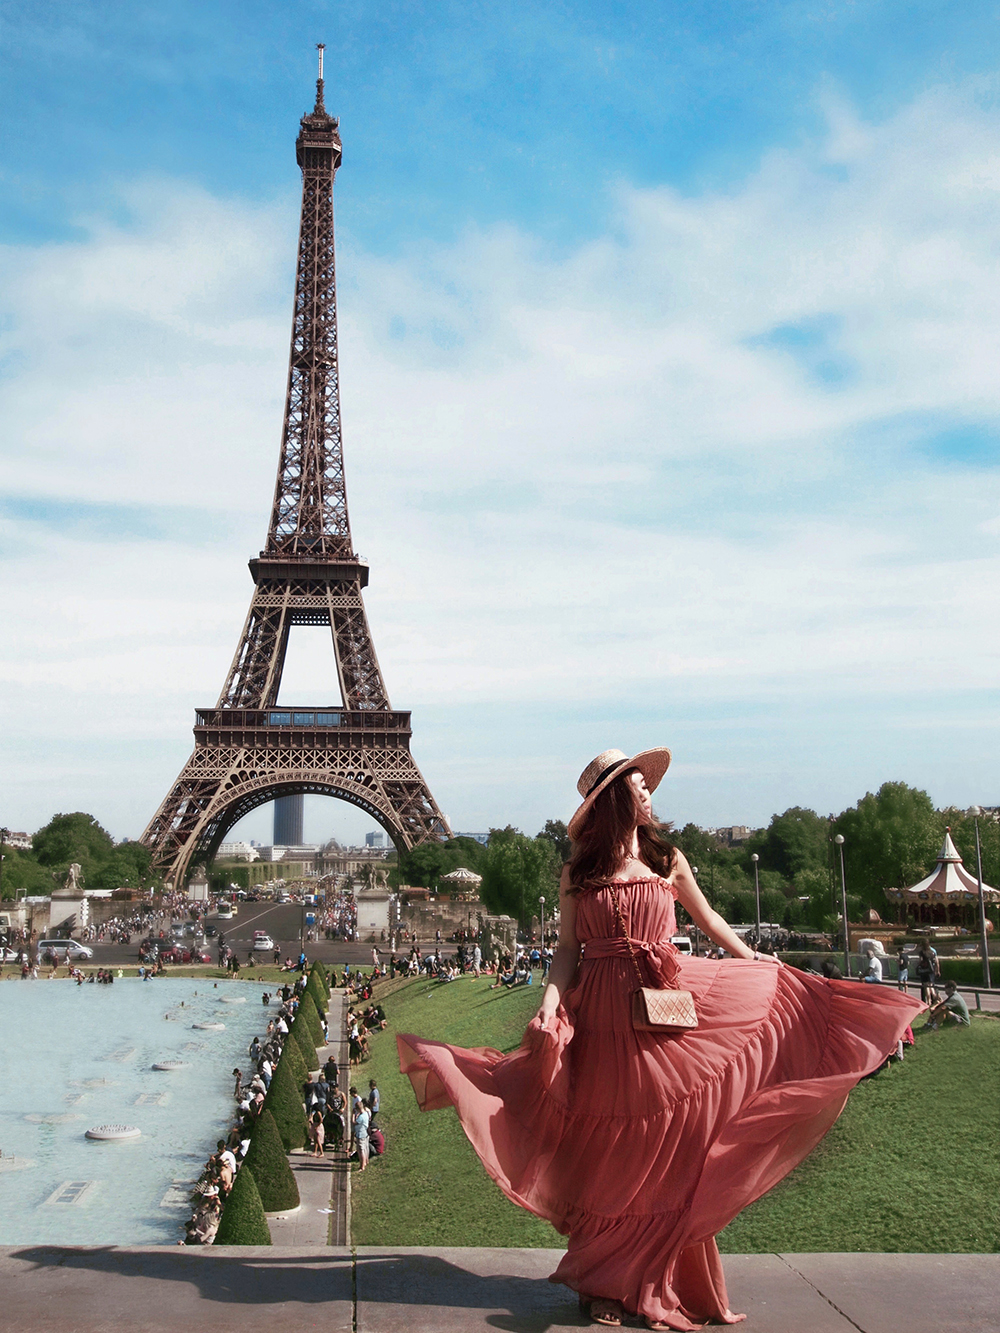 willabelle-ong-paledivision-street-style-fashion-travel-lifestyle-blog-australia-singapore-blogger-paris-france-eiffel-tower-jill-jill-stuart-chiffon-dress-chanel-bag-boater-hat-2